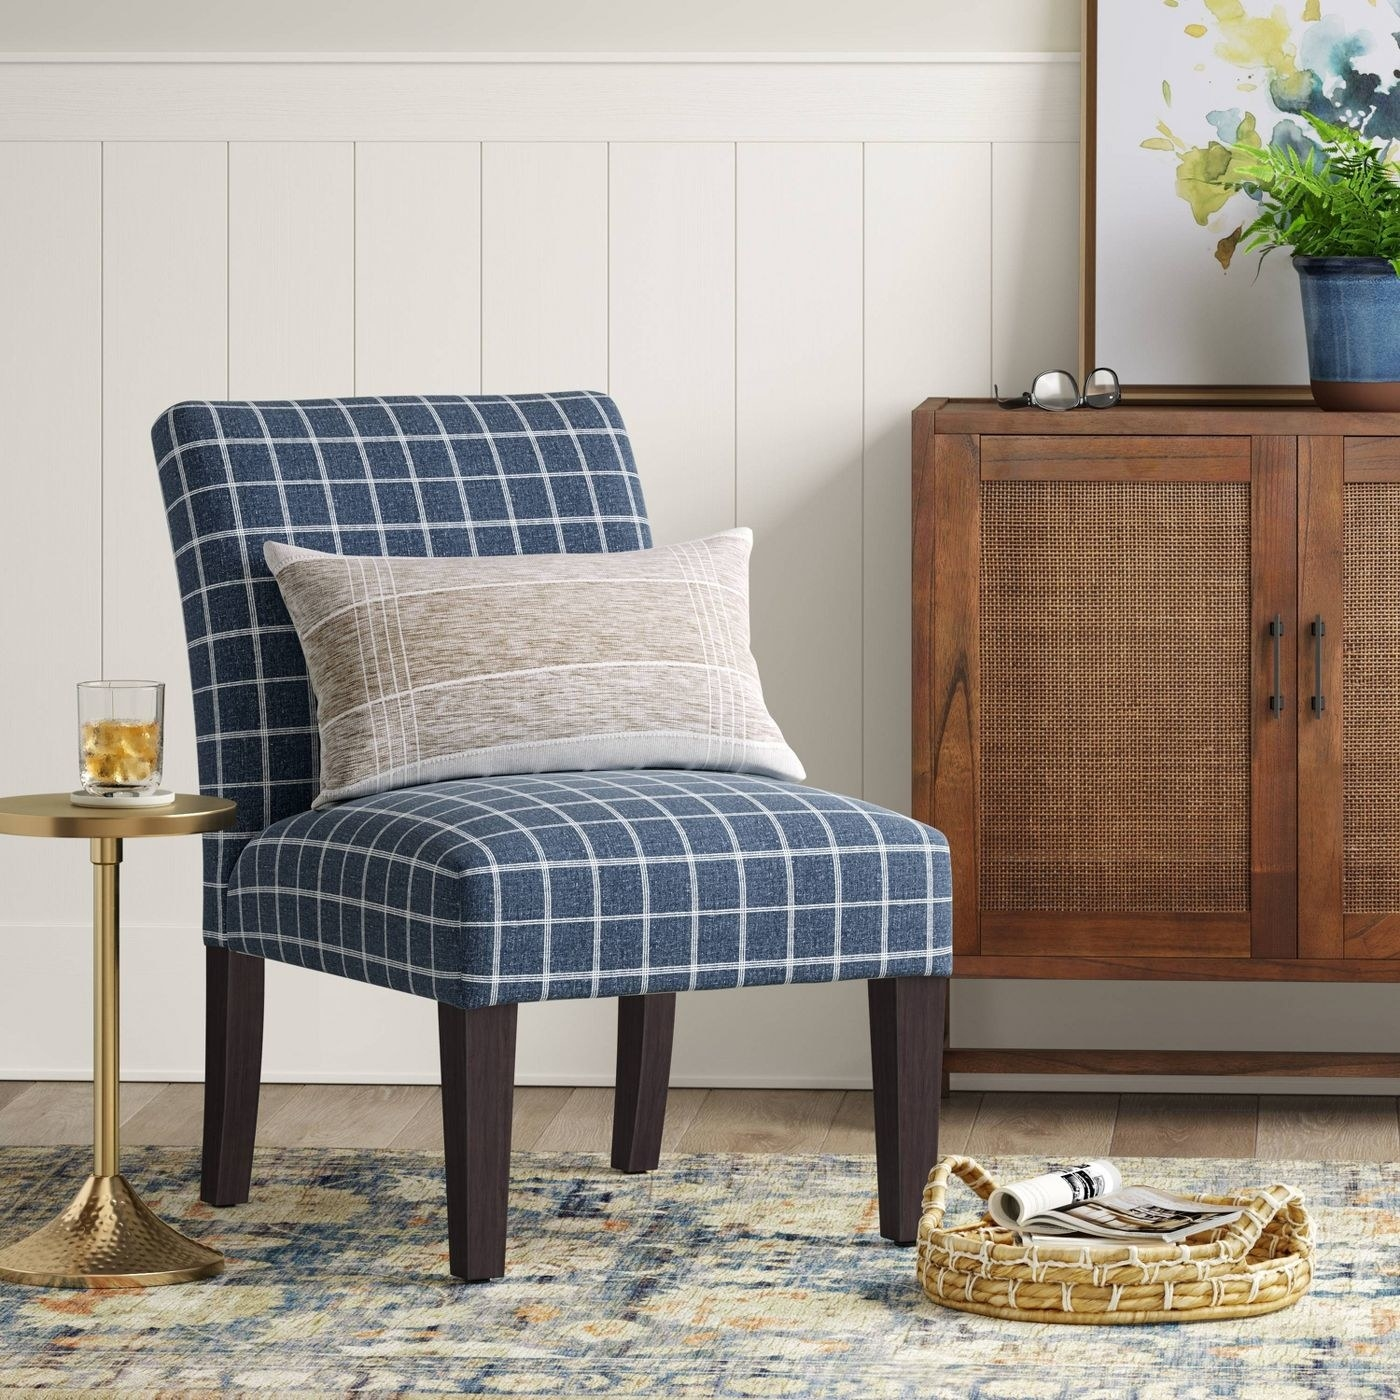 the blue and white checkered chair